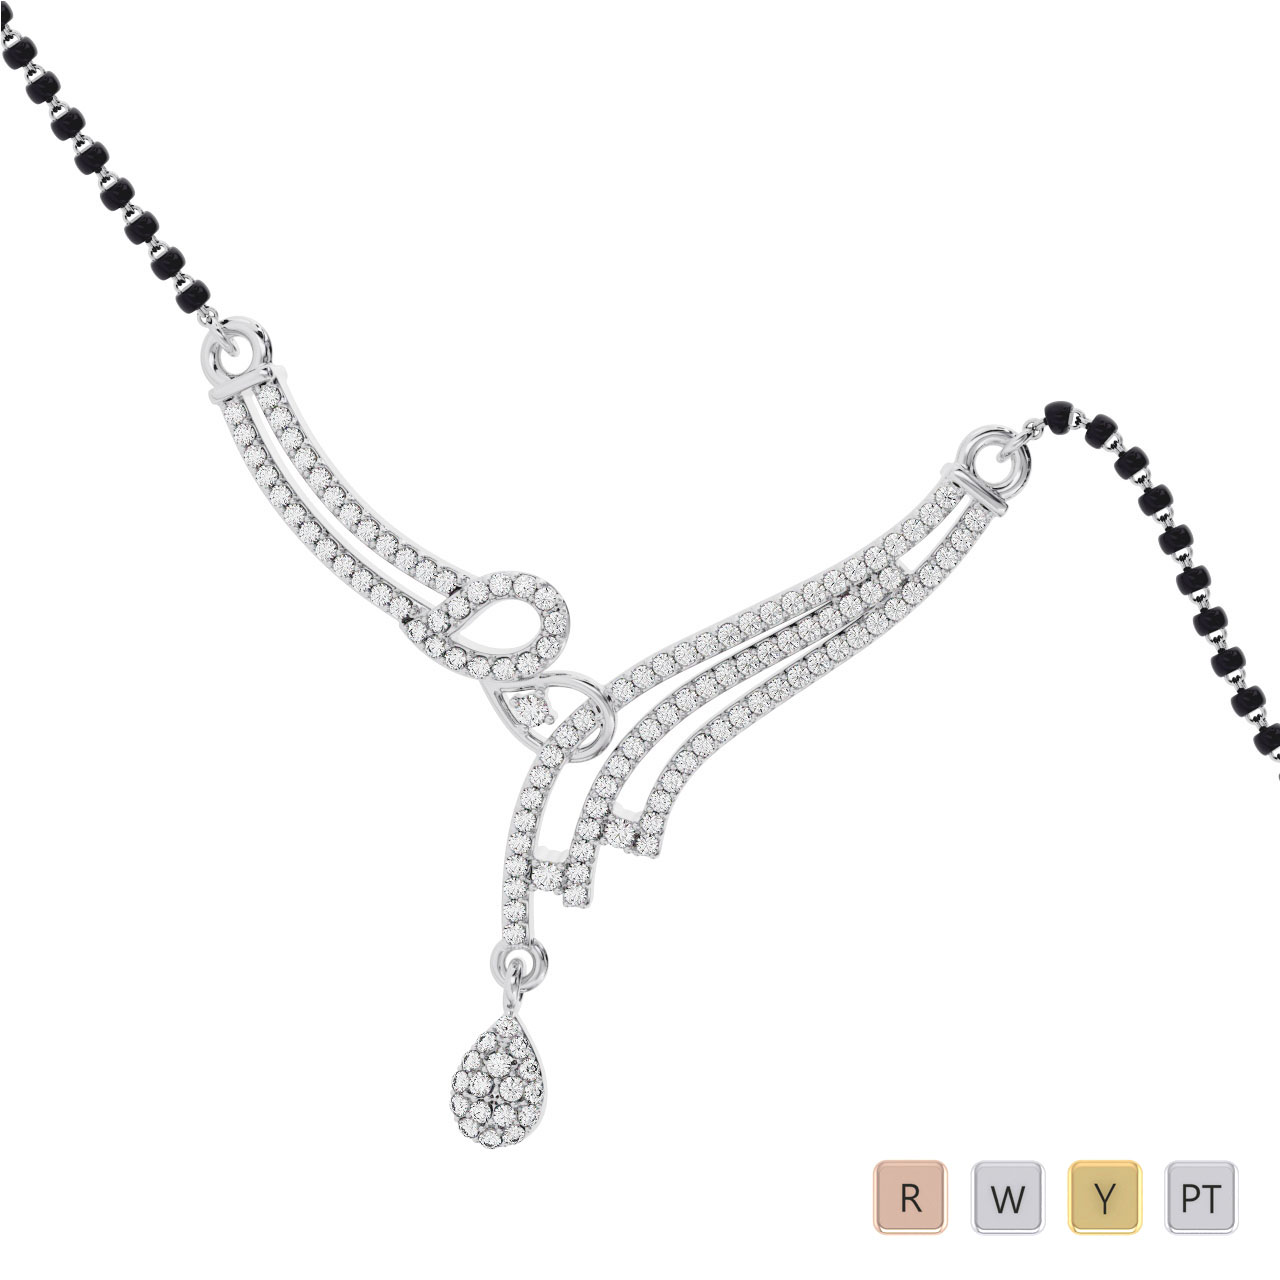 Gold / Platinum Round Cut Diamond Mangalsutra TZ0363